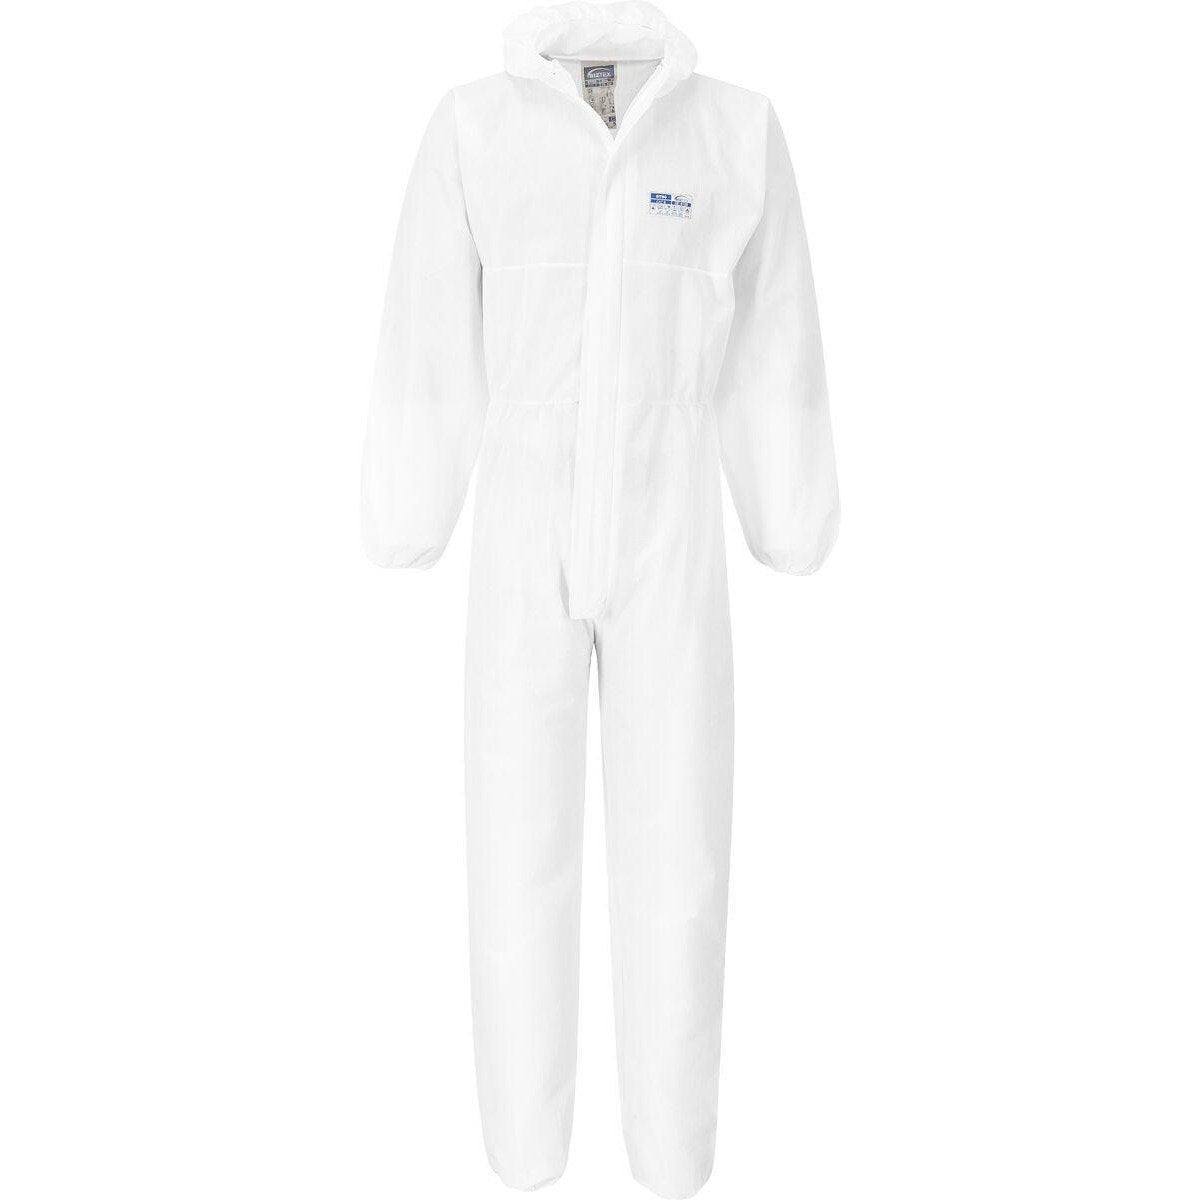 Portwest BizTex SMS 5/6 FR Coverall ST80 - reid outdoors